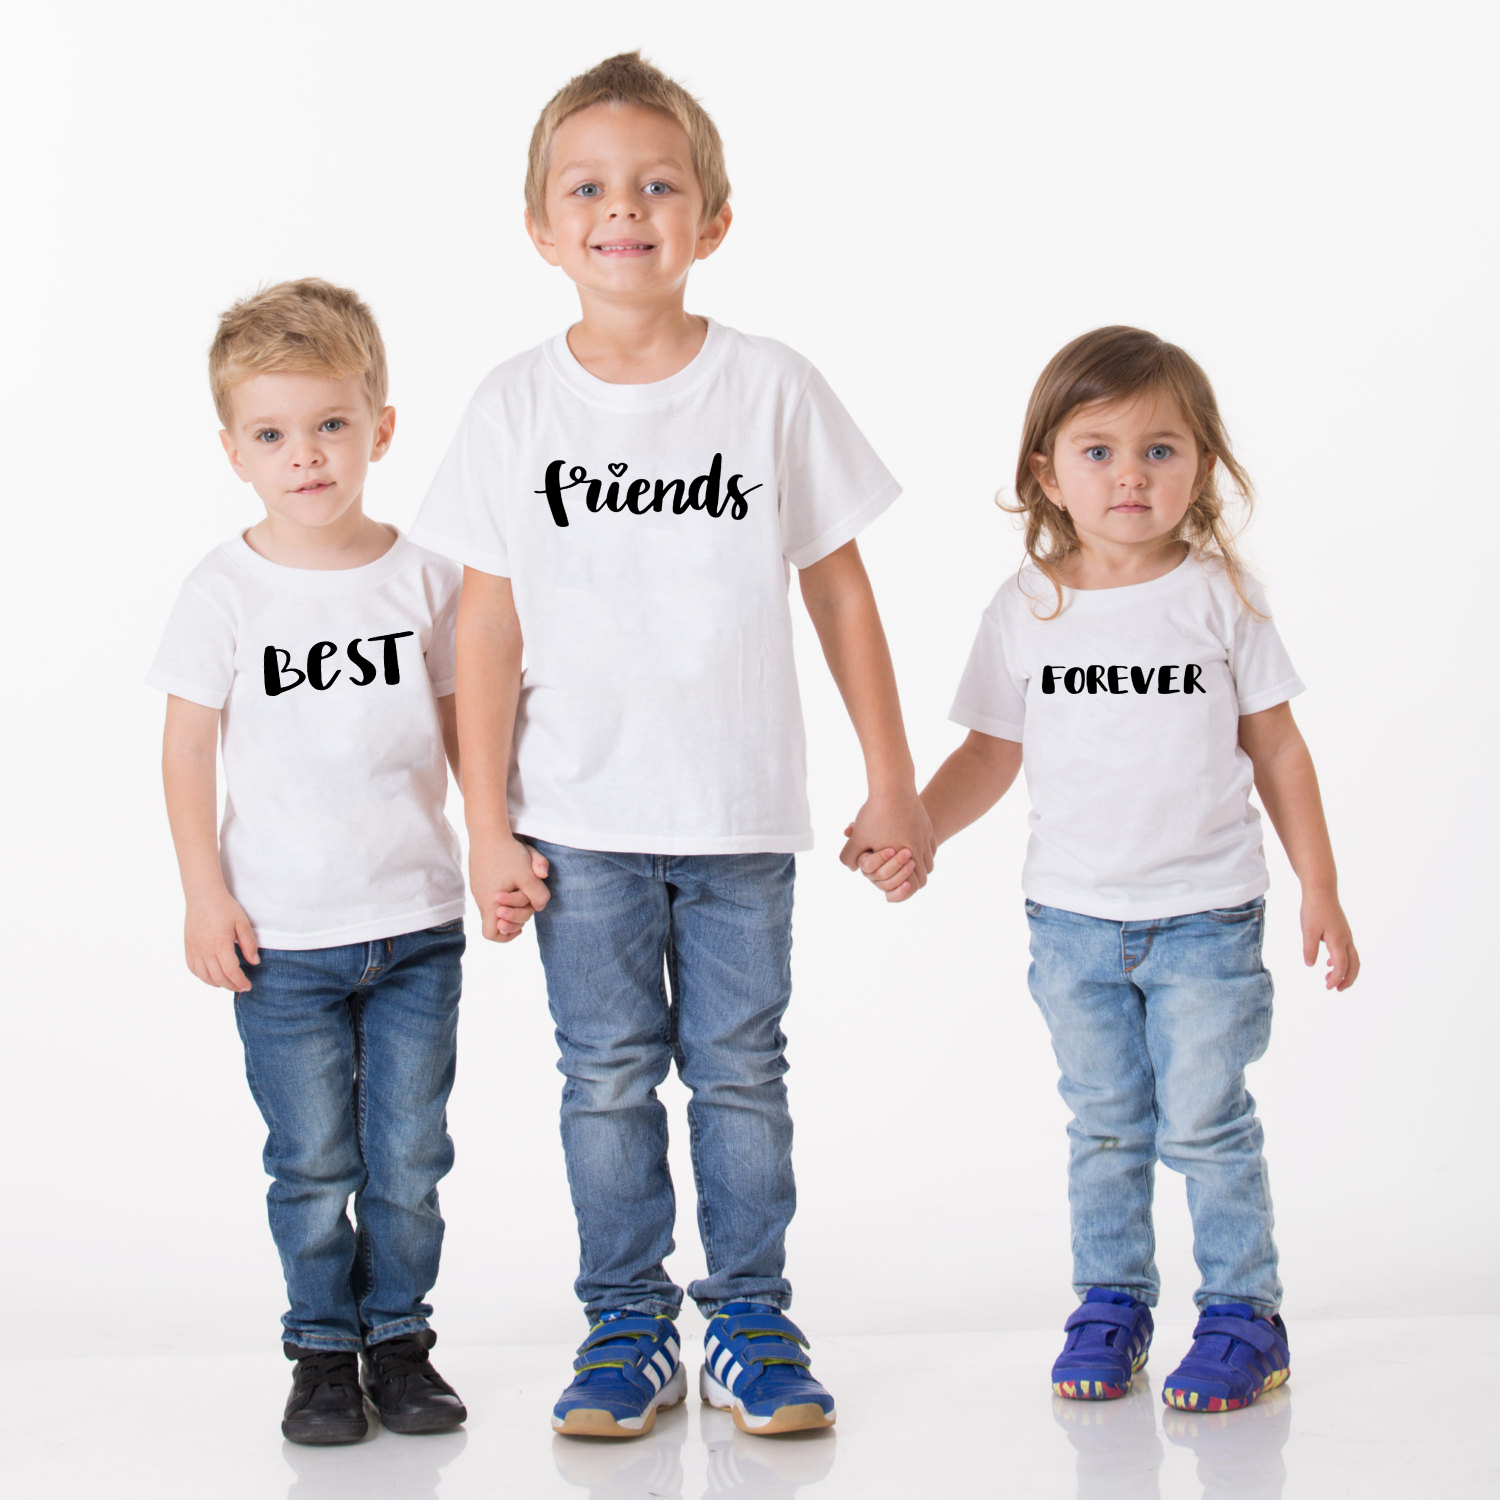 <font><b>Best</b></font> <font><b>Friends</b></font> Forever <font><b>Kids</b></font> Summer T-<font><b>shirt</b></font> Sister Brothers Festival Clothing Short Sleeve <font><b>Kids</b></font> Senior Casual Funny Costume image